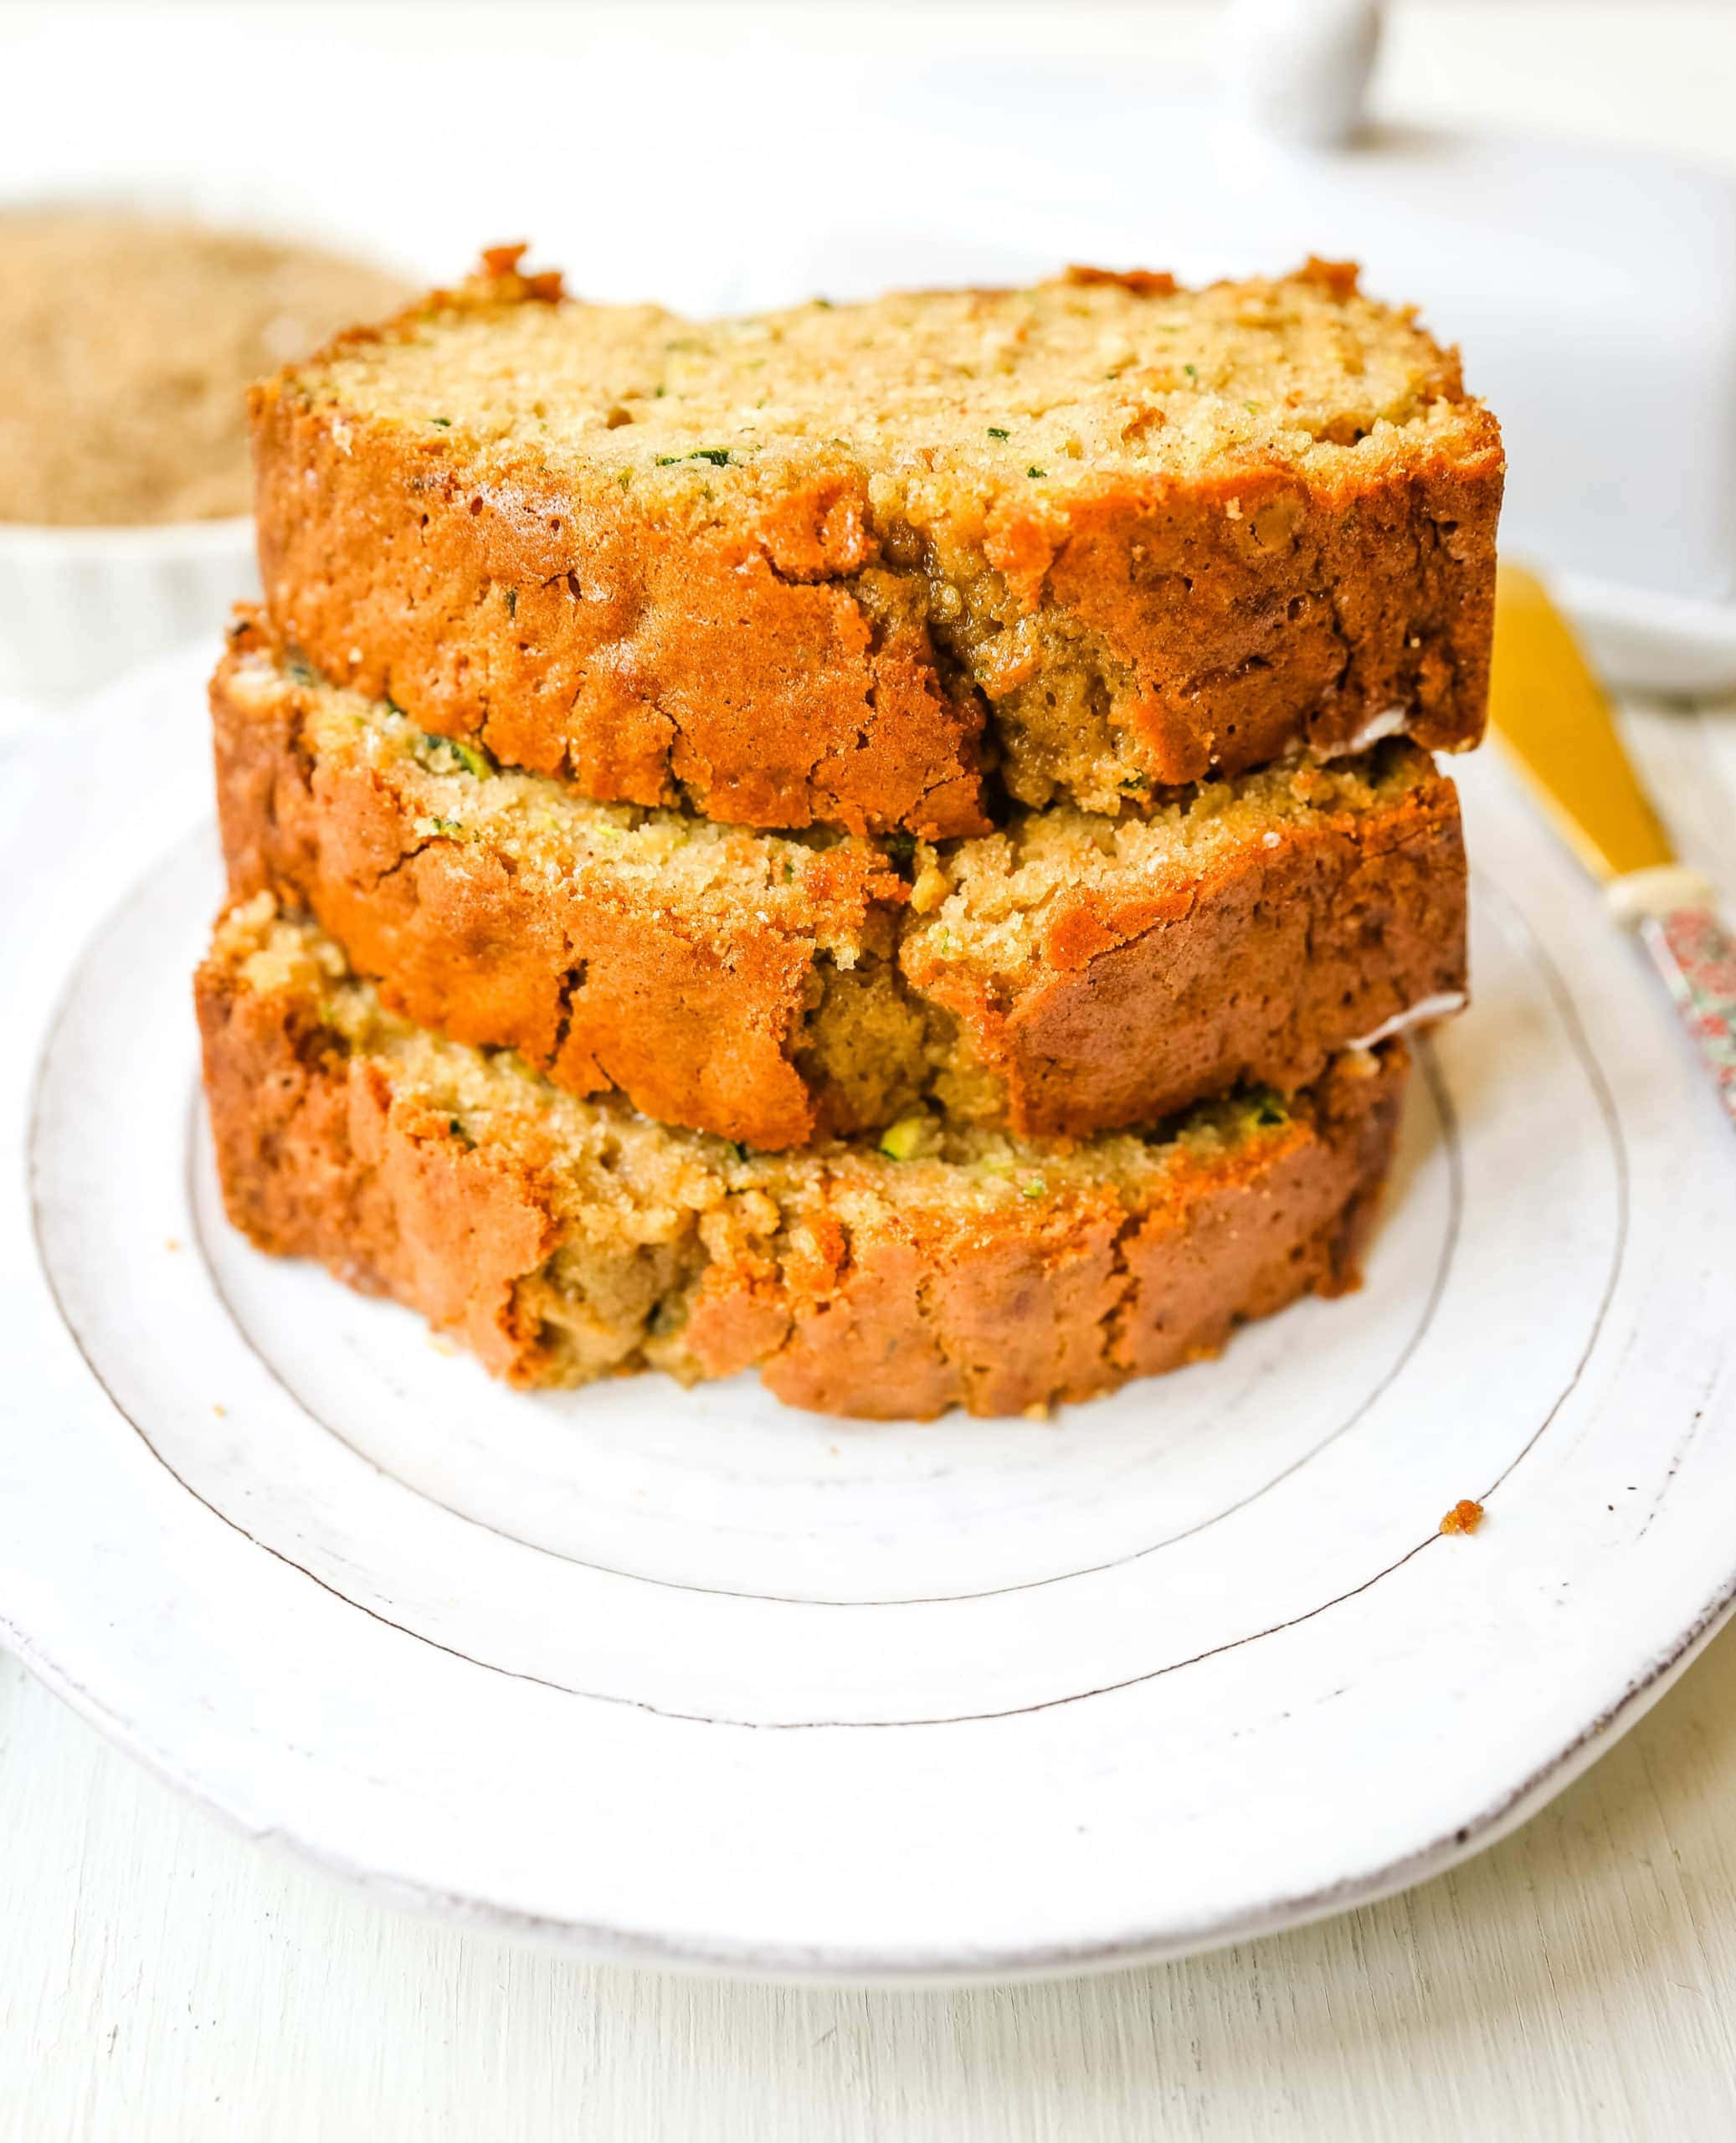 Zucchini Bread. This moist, sweet zucchini bread with a touch of spice is the best zucchini bread recipe out there!  www.modernhoney.com #zucchinibread #zucchini #quickbread #bread